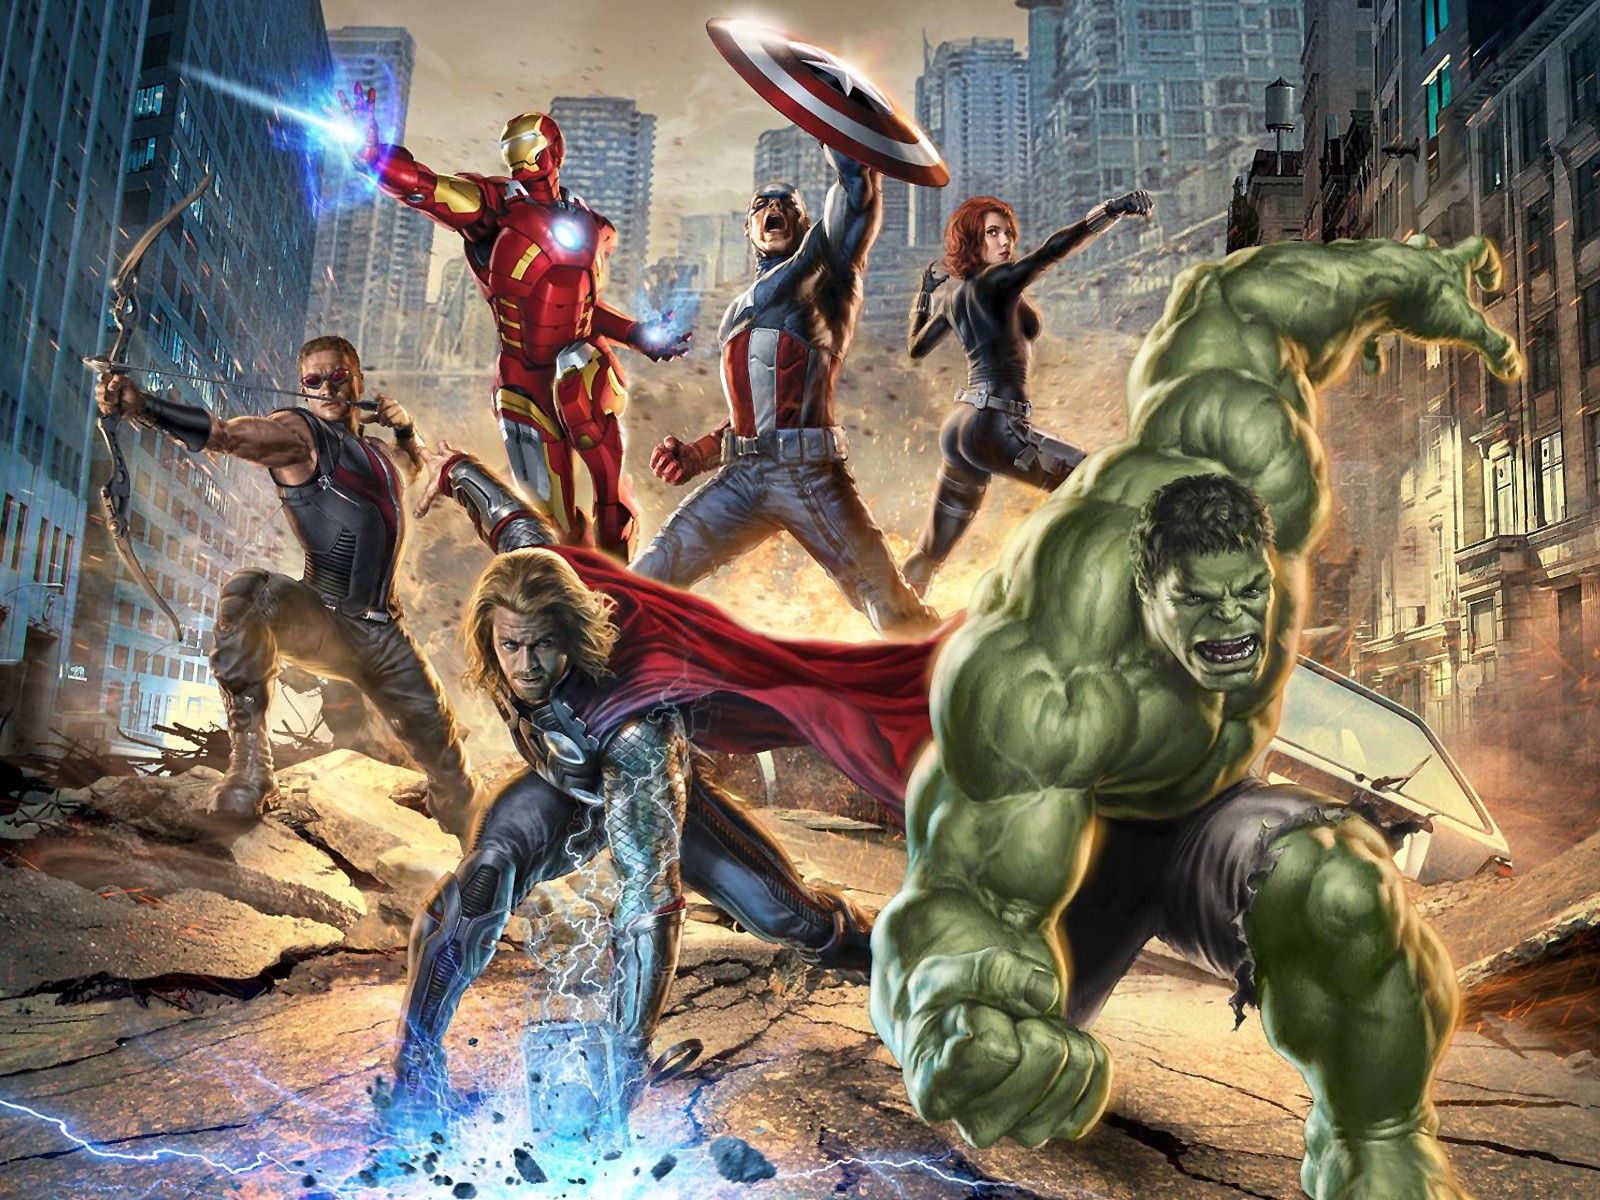 The Avengers Images The Avengers Hd Wallpaper And Background Photos